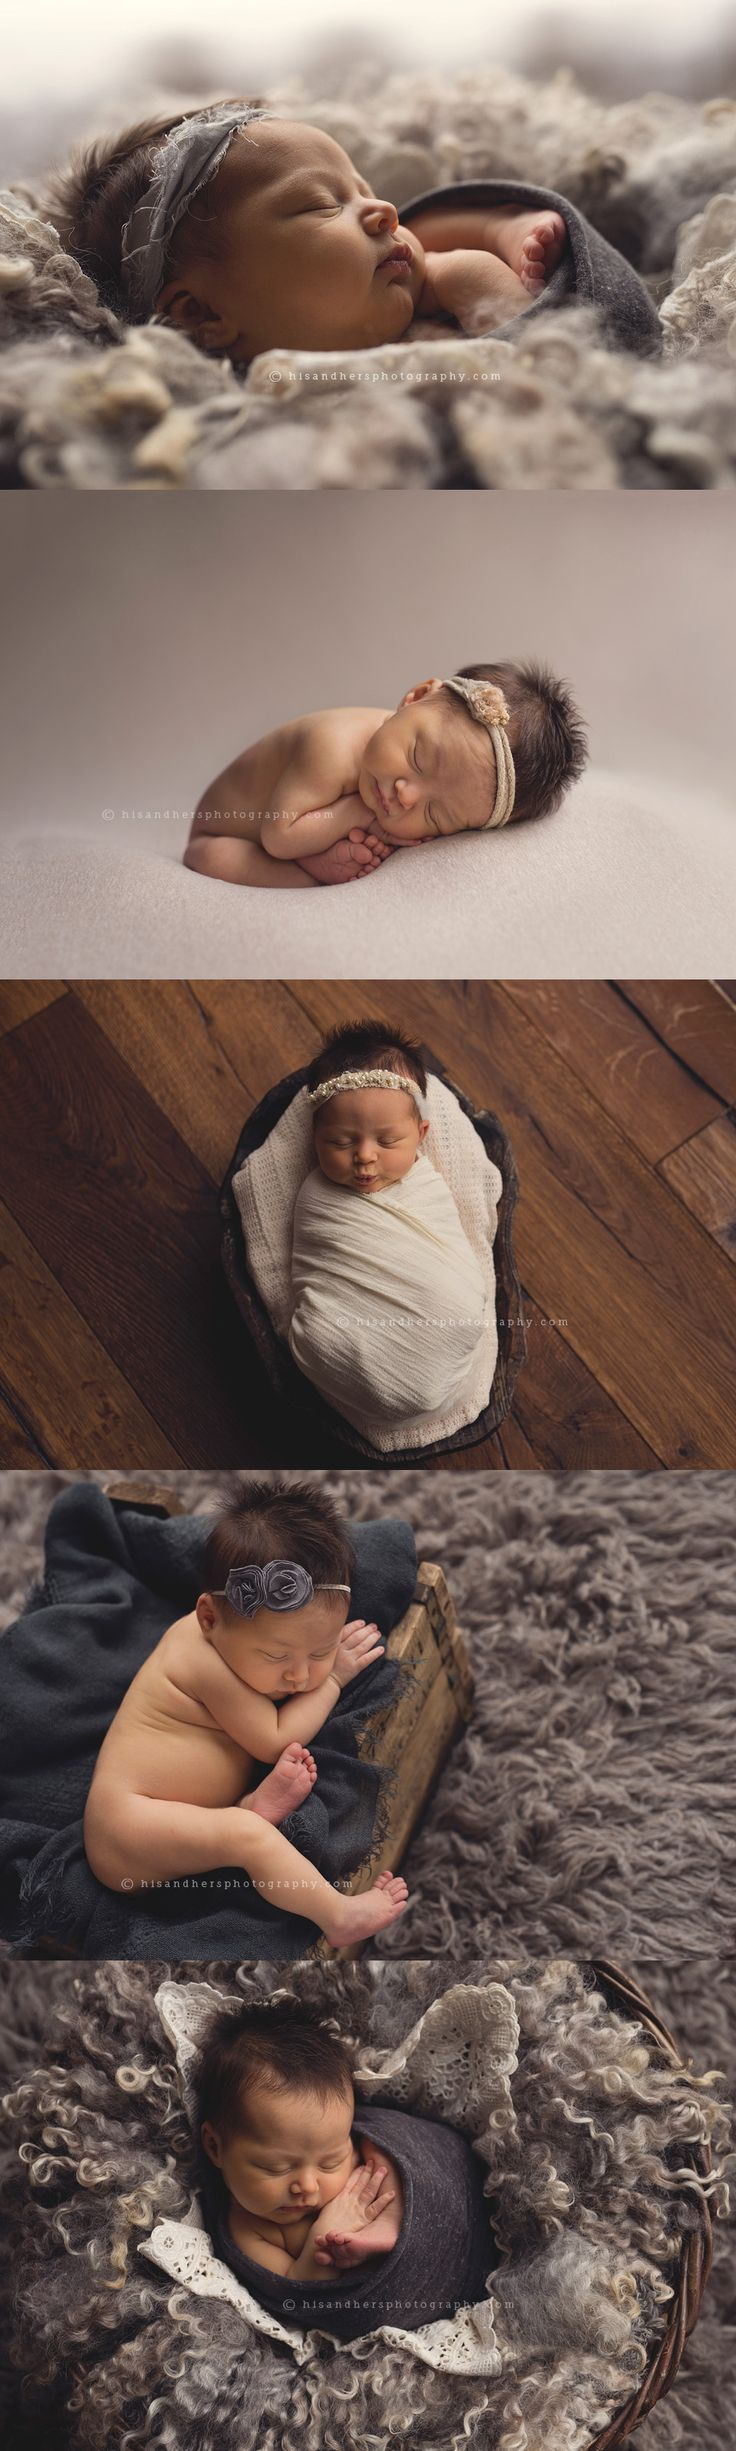 Newborn photography | Des Moines, Iowa photographer, Darcy Milder | Presley